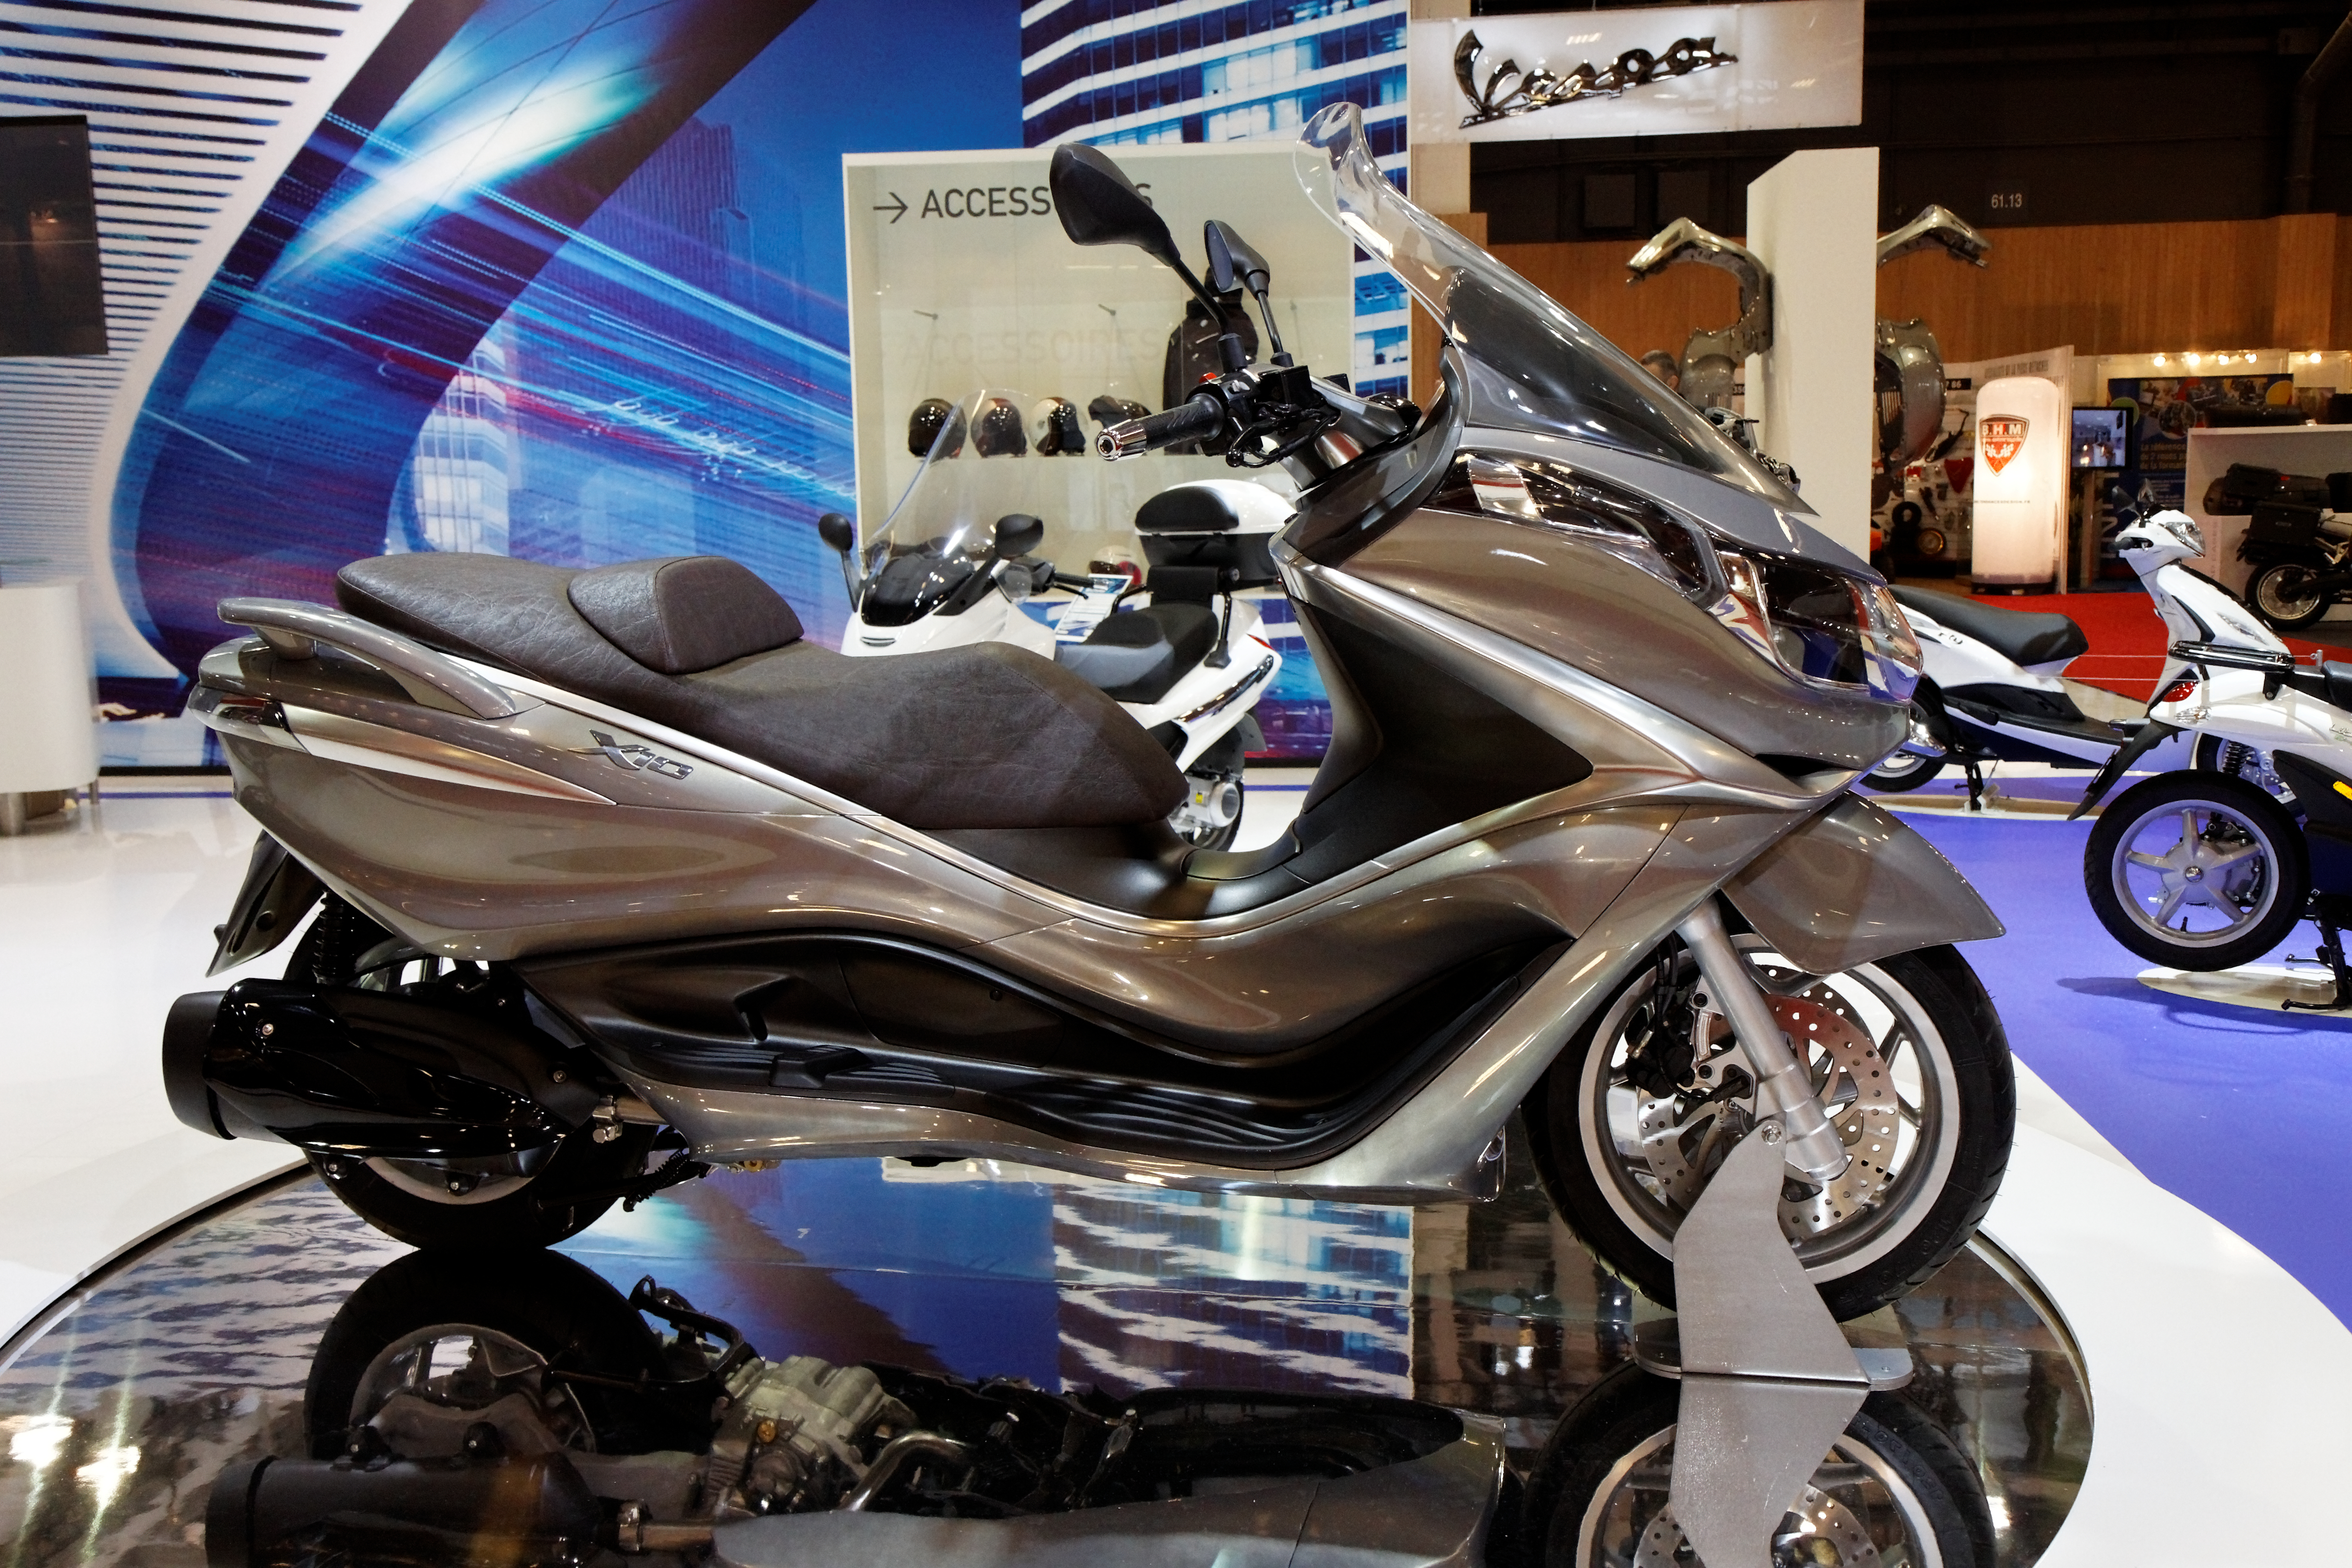 file paris salon de la moto 2011 piaggio x10 350 wikimedia commons. Black Bedroom Furniture Sets. Home Design Ideas